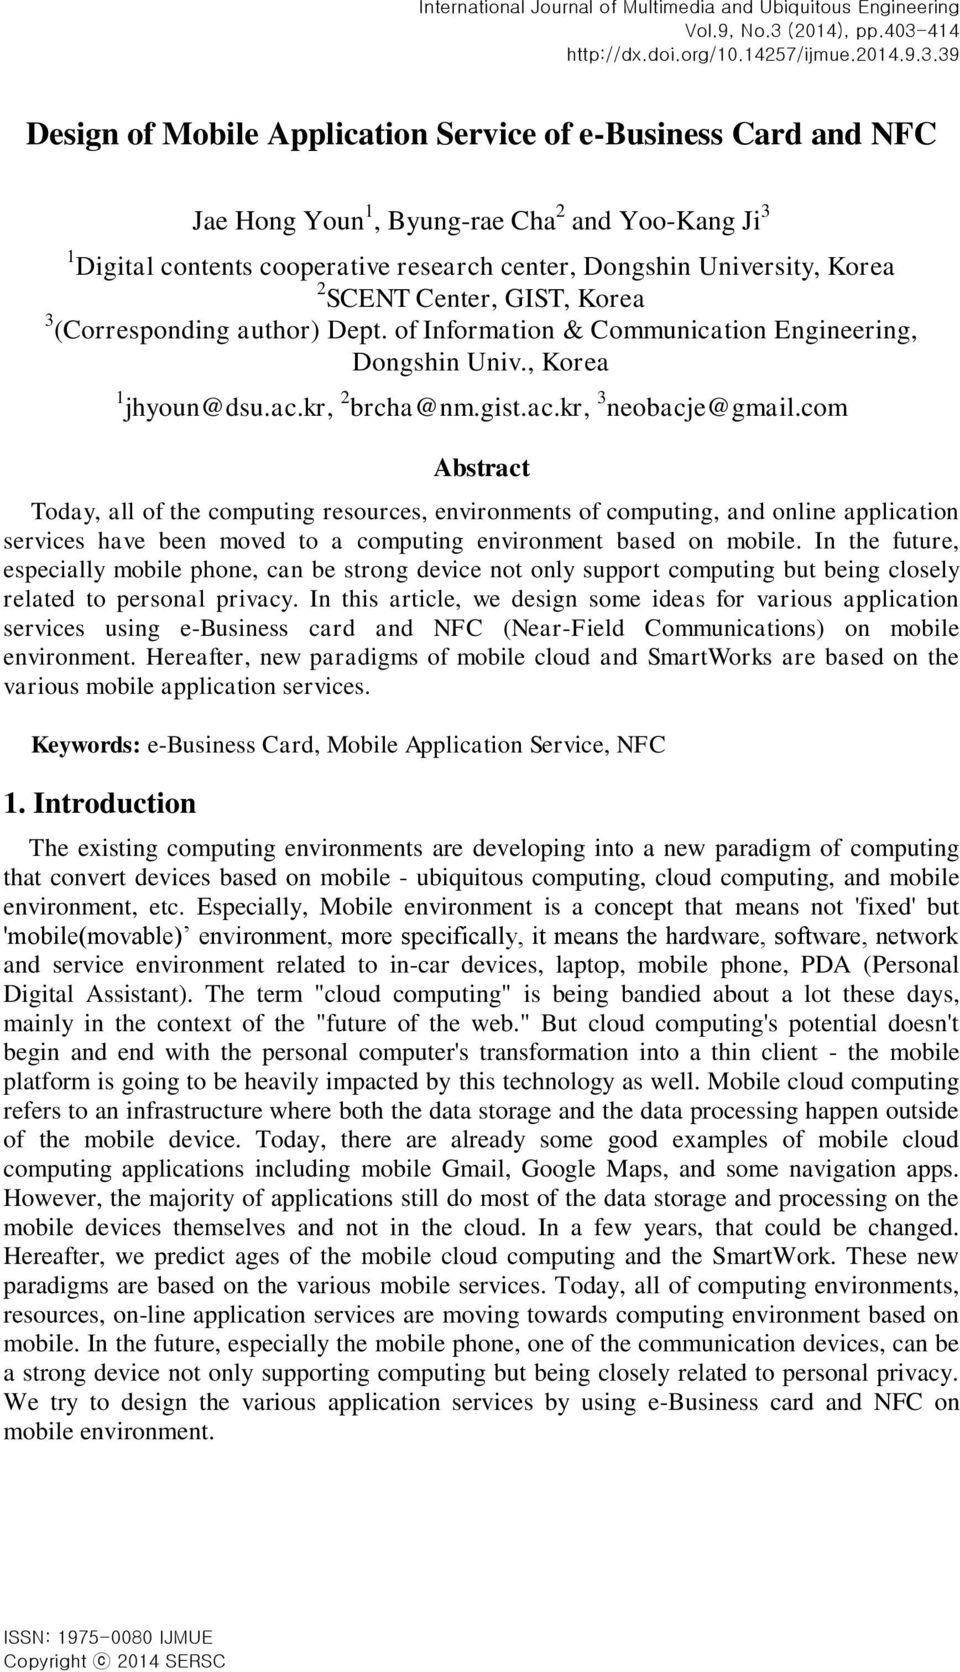 39 Design of Mobile Application Service of e-business Card and NFC Jae Hong Youn 1, Byung-rae Cha 2 and Yoo-Kang Ji 3 1 Digital contents cooperative research center, Dongshin University, Korea 2